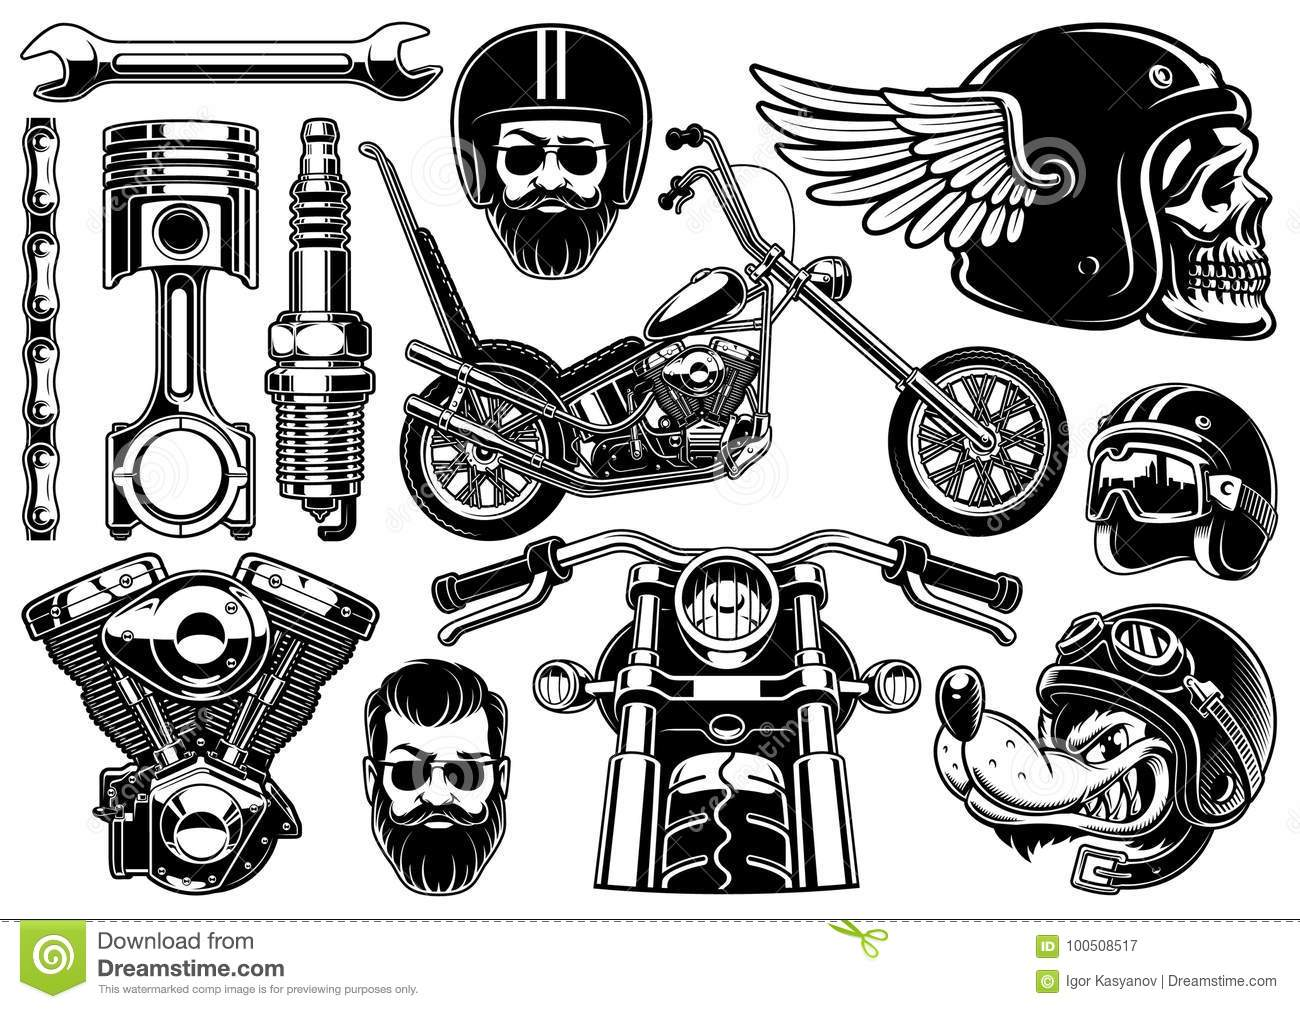 Motorcycle Clipart With 12 Elements On White Background Stock.